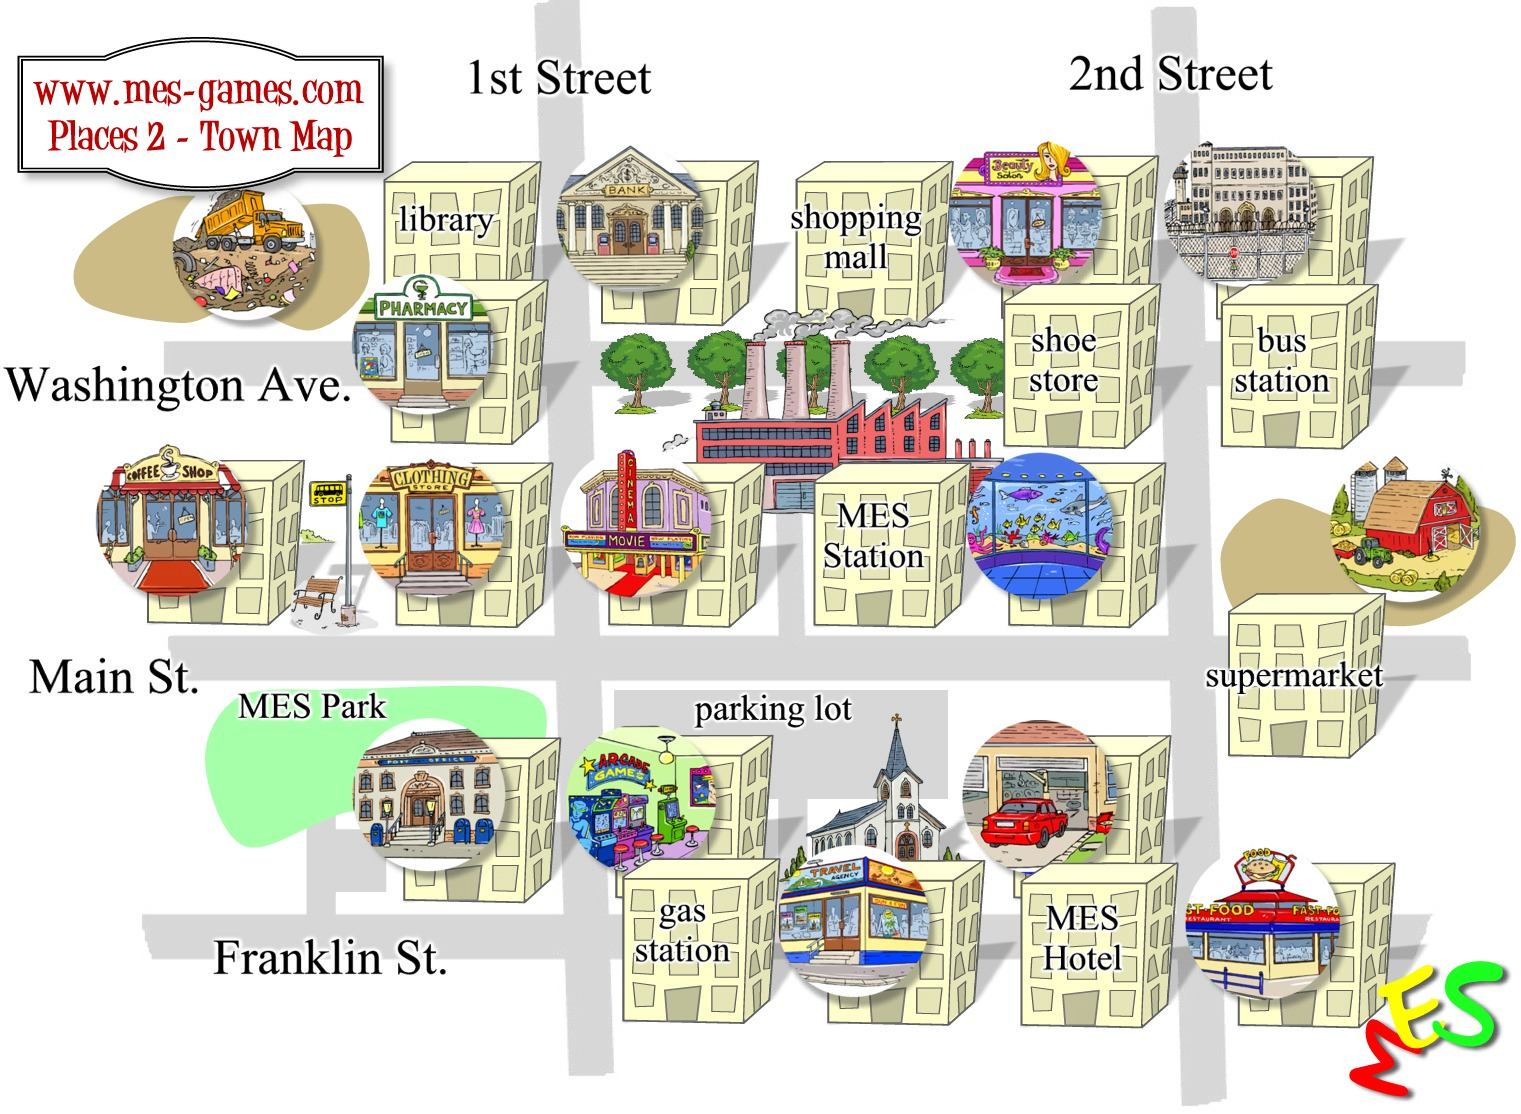 Students will need this city map to complete the grammar exercises: